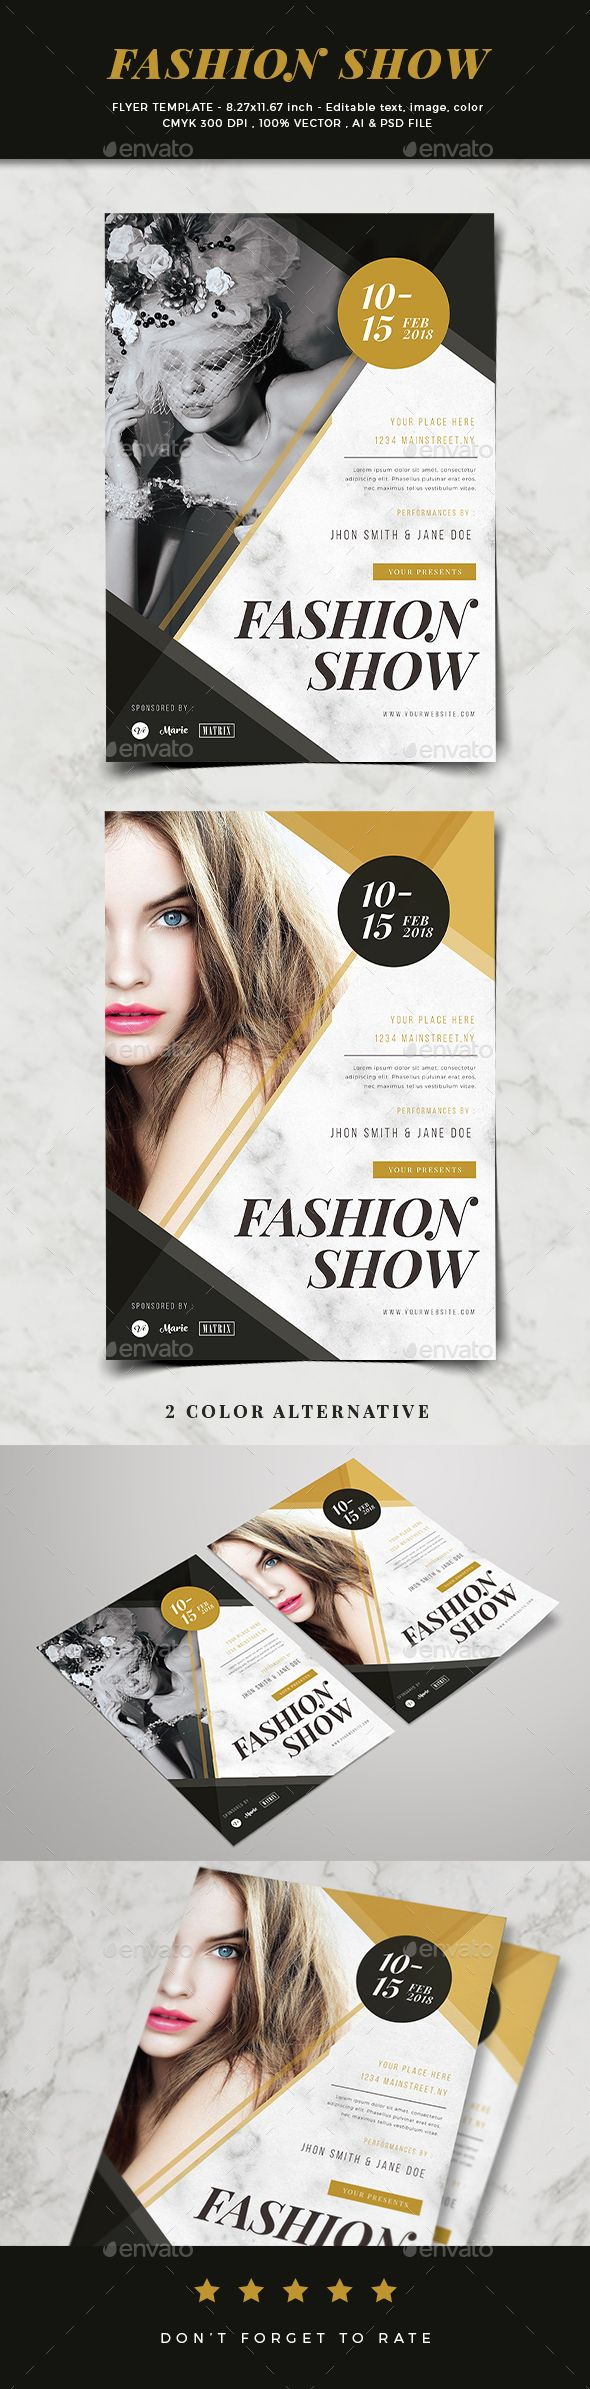 Fashion Show Flyer — Photoshop PSD #trends #style • Available here ➝ https://graphicriver.net/item/fashion-show-flyer/20722112?ref=pxcr